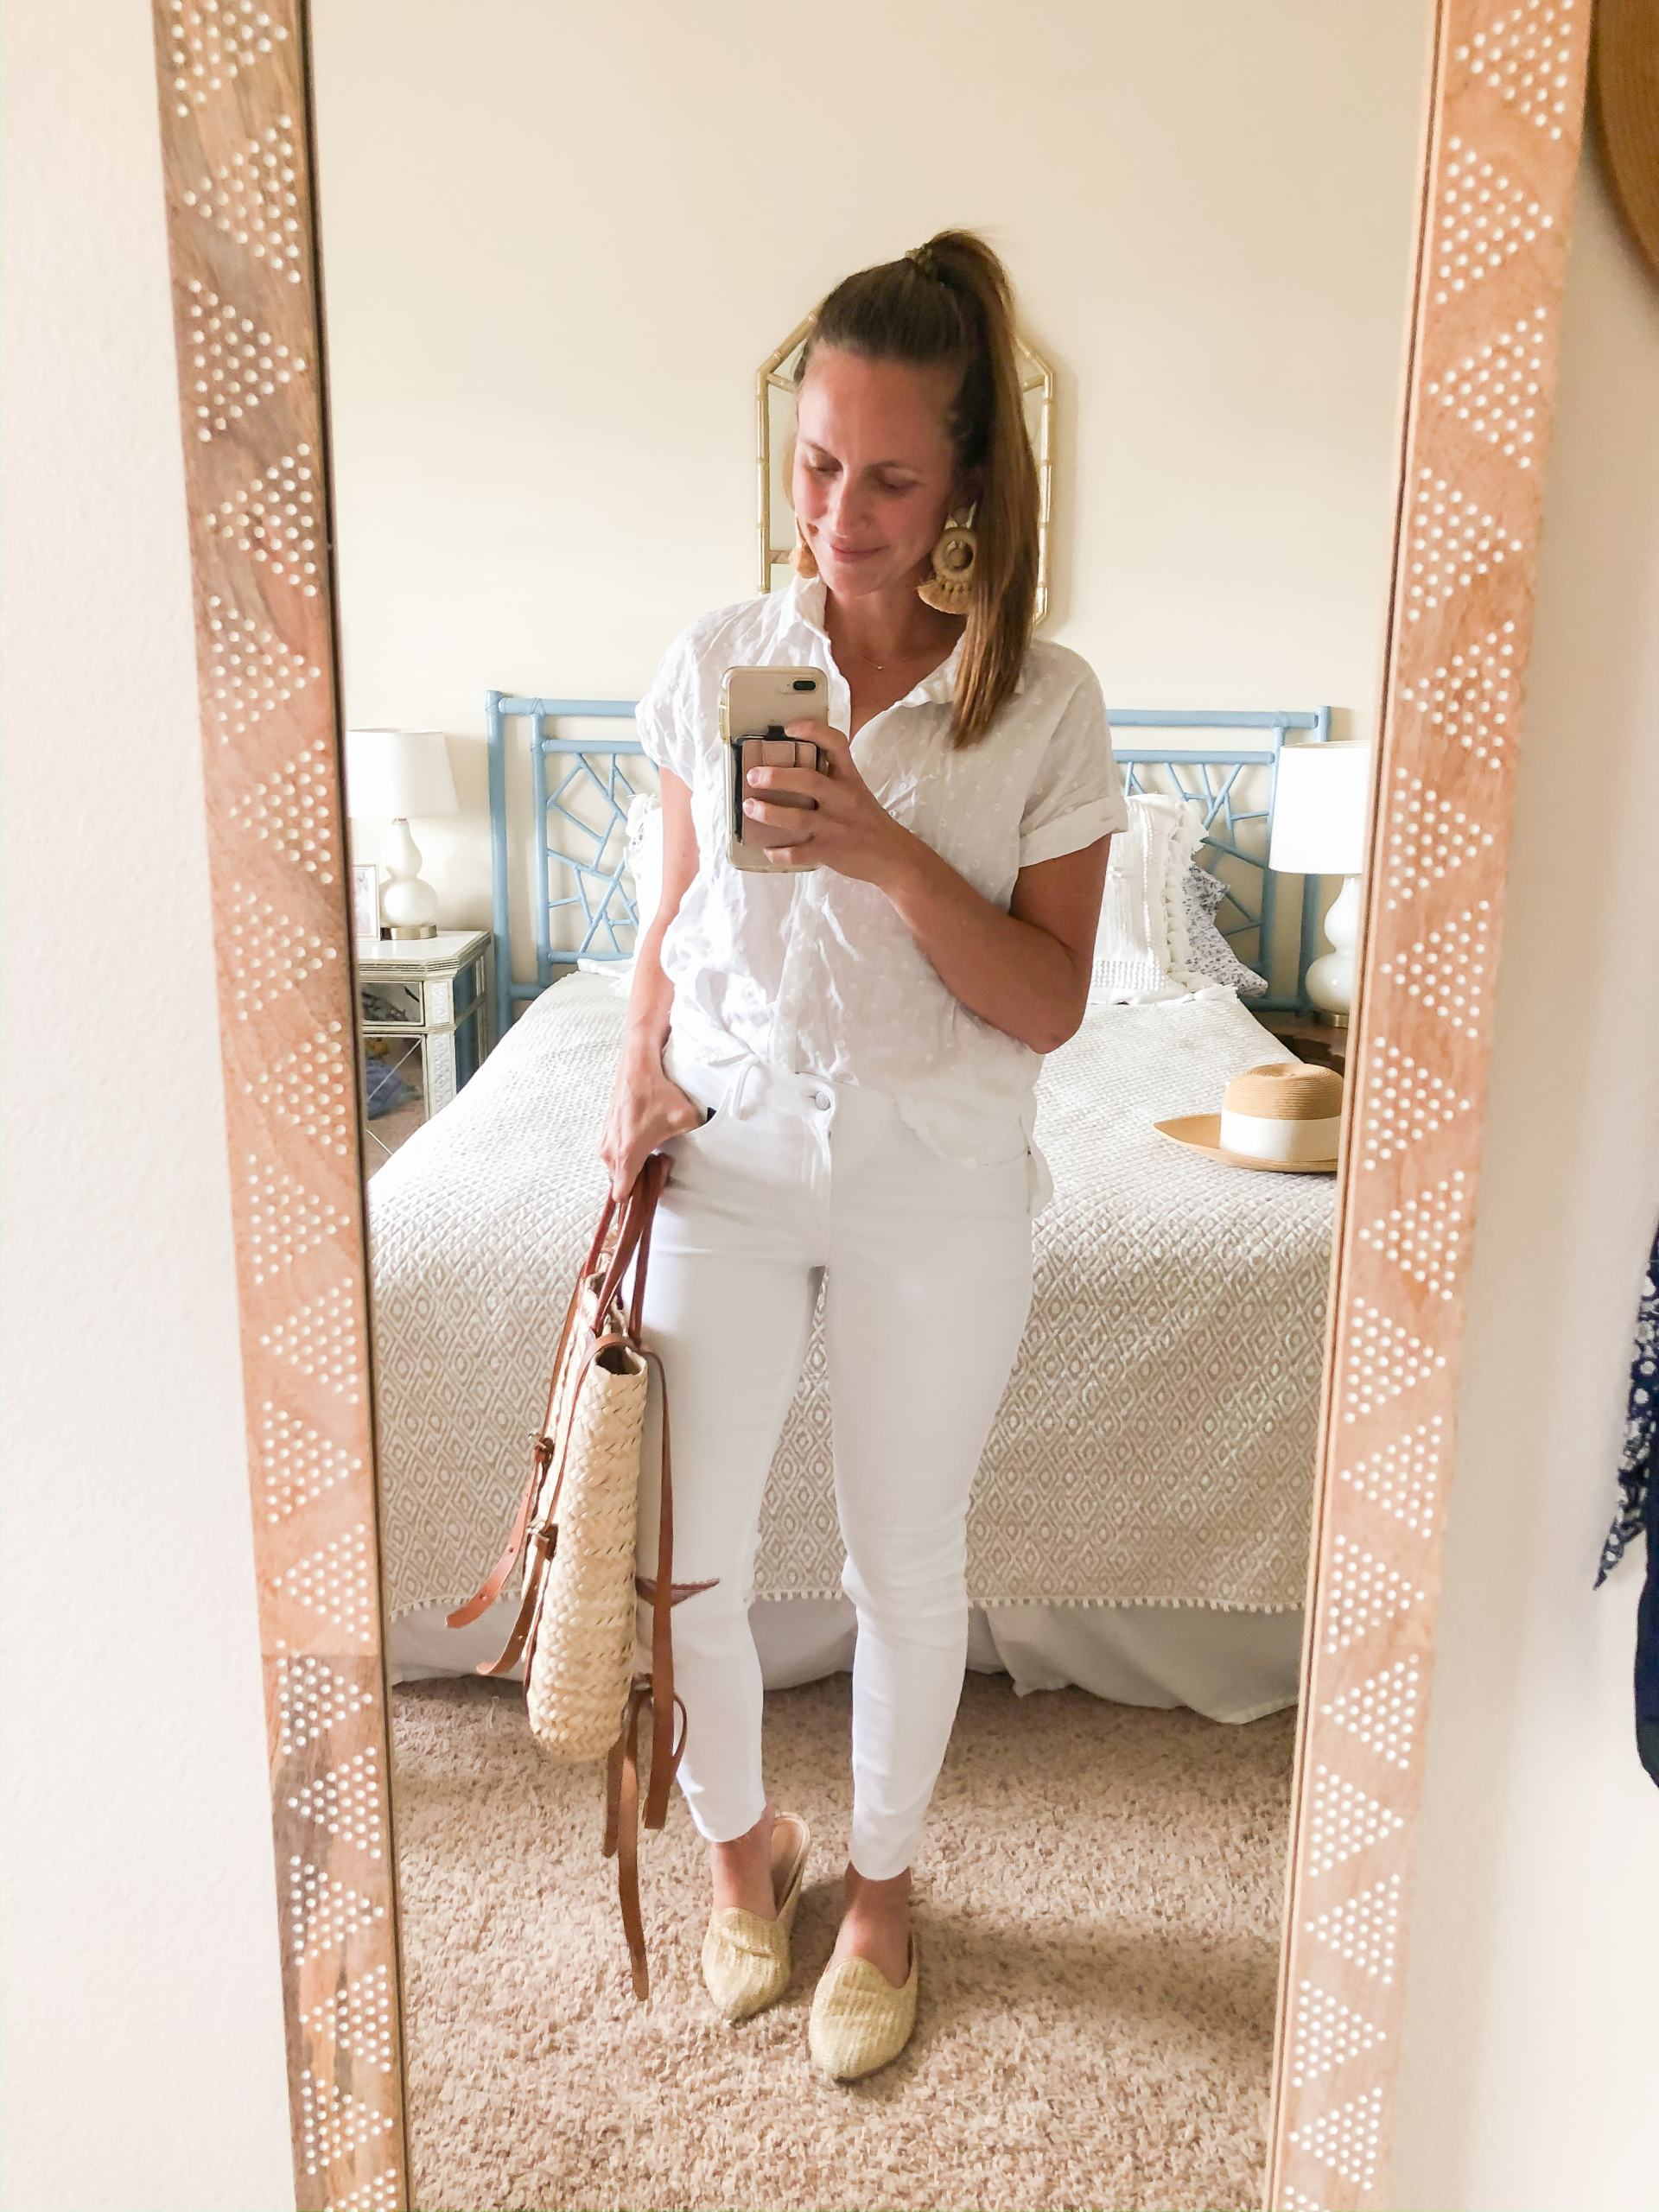 eyelet button front shirt - eyelet camp shirt - textured camp shirt - short sleeved button down shirt - all white outfit - spring outfit ideas - classic spring style - nursing friendly spring outfit